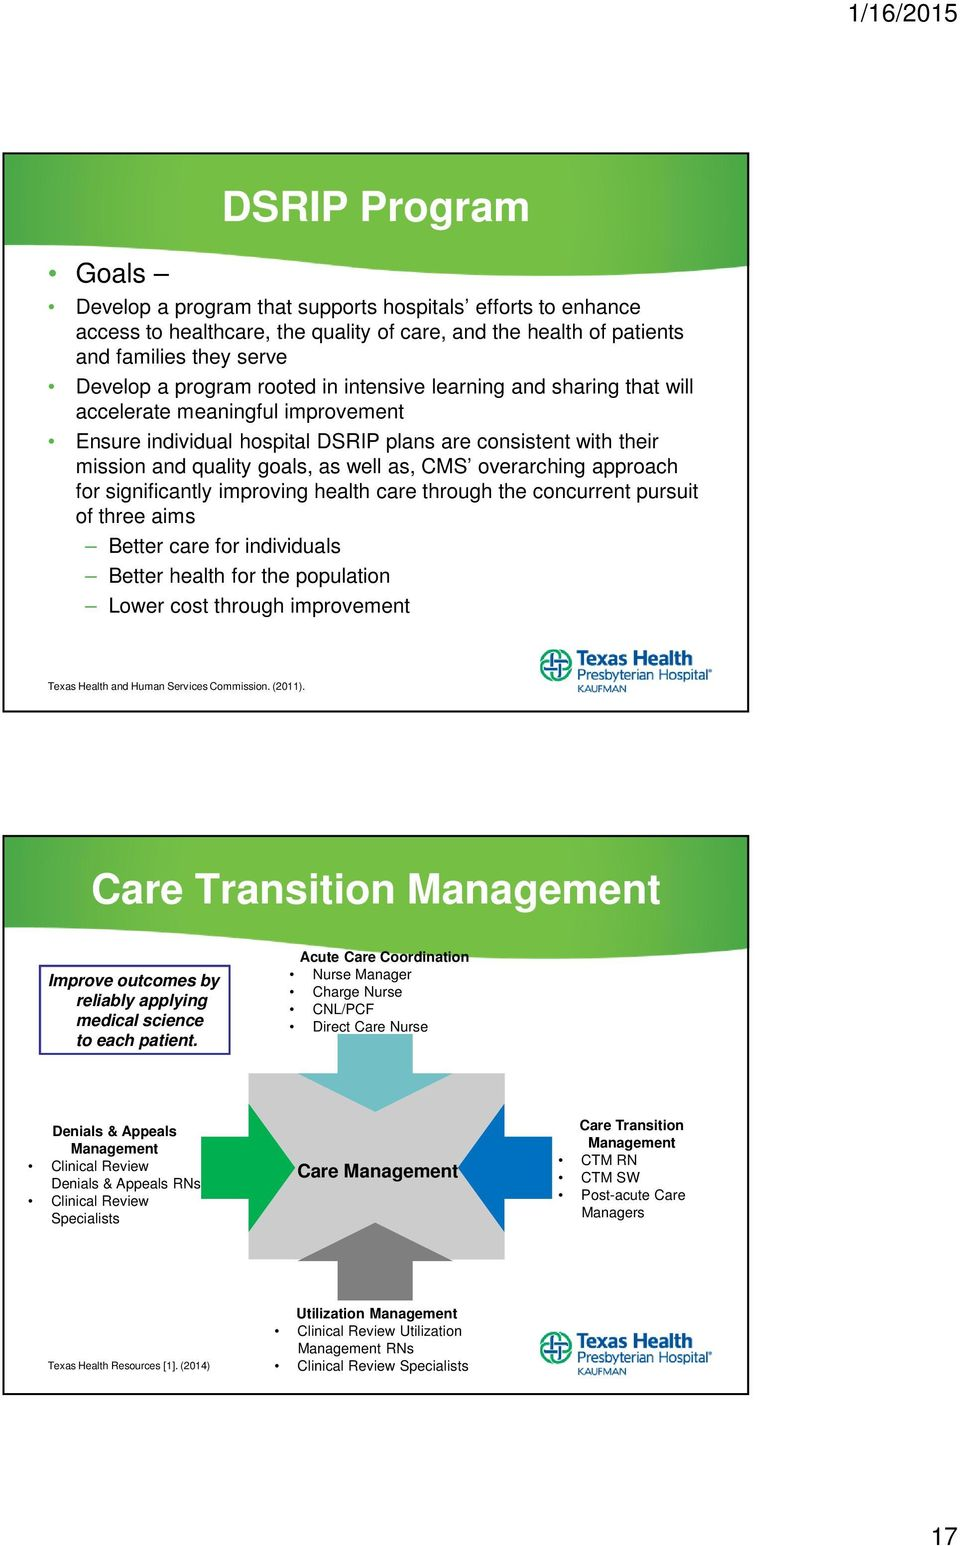 approach for significantly improving health care through the concurrent pursuit of three aims Better care for individuals Better health for the population Lower cost through improvement Texas Health